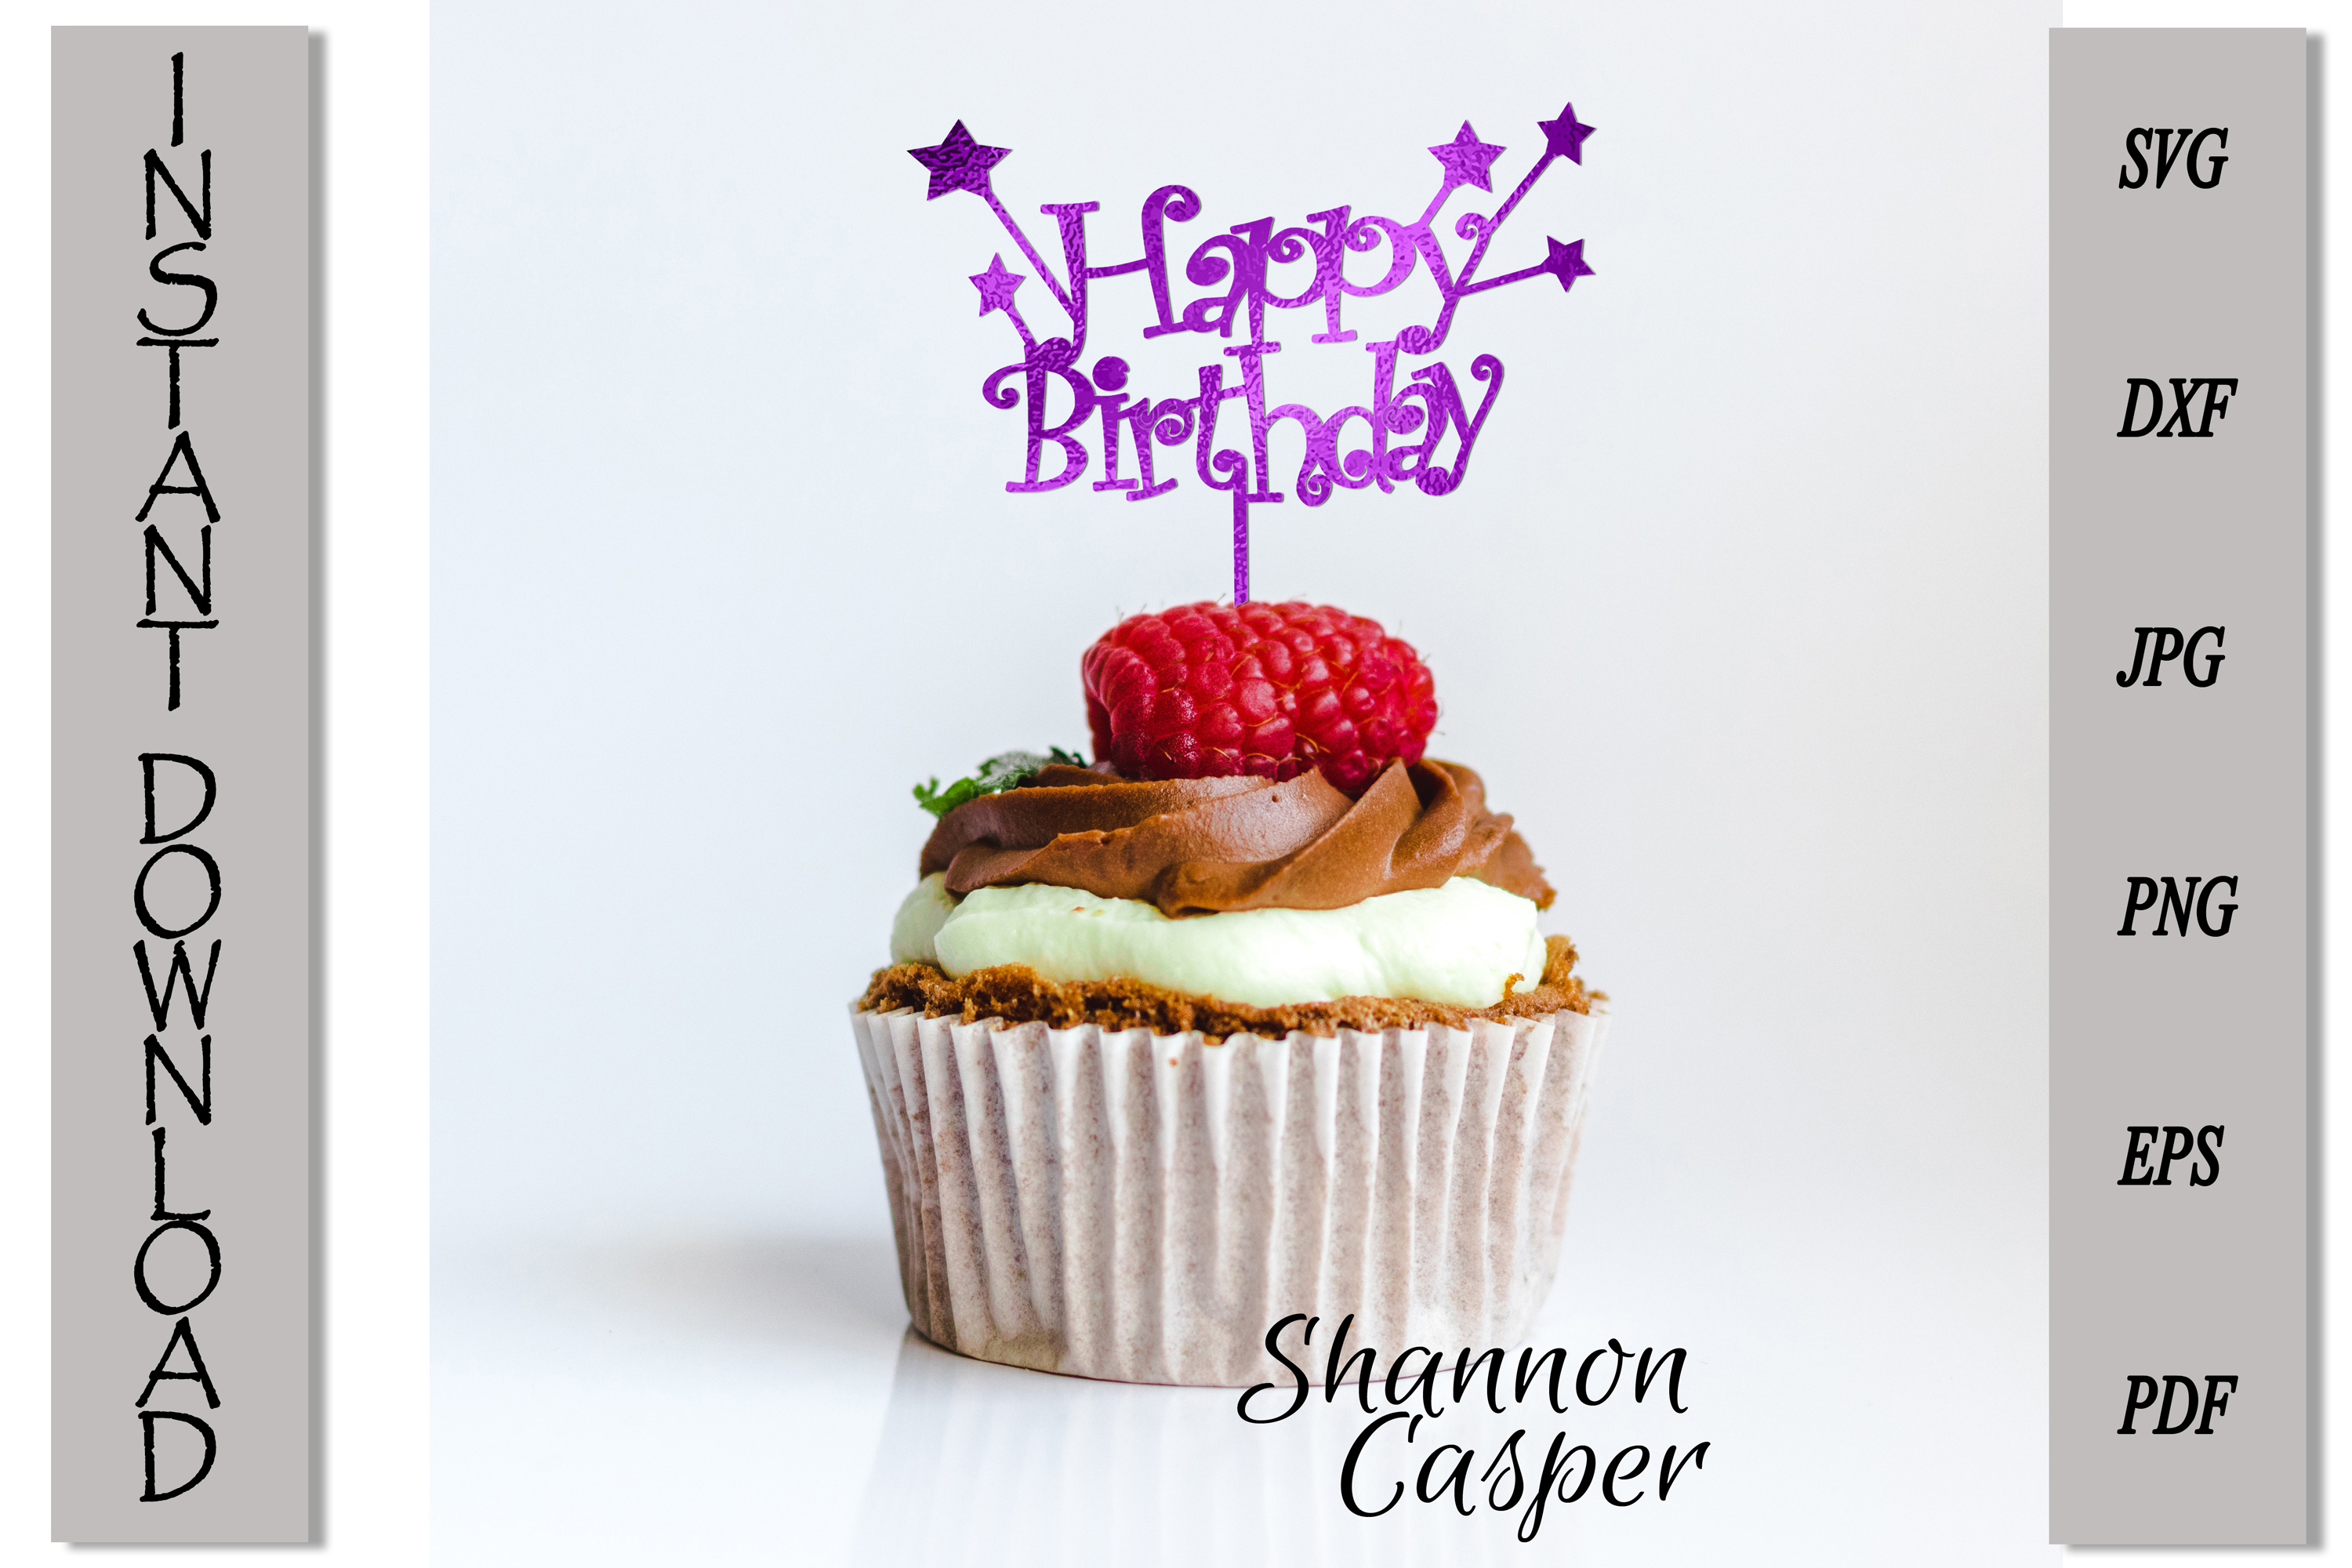 Happy Birthday Cake Topper with Stars example image 7